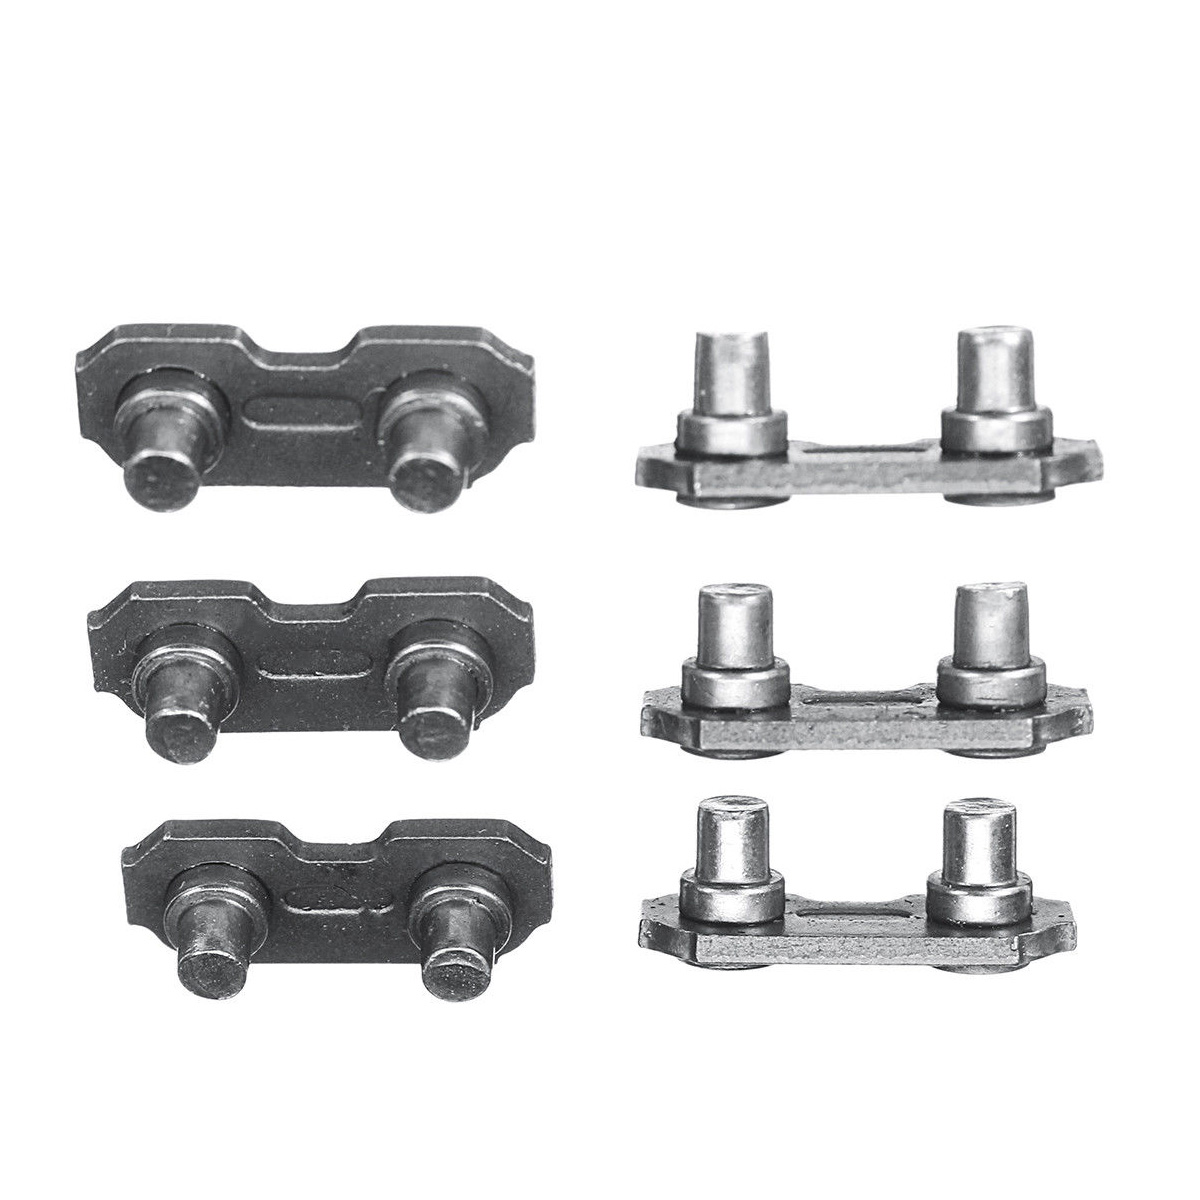 6 PCS 3/8 0.063 Steel Chainsaw Chain Joiner Link For Joining Chains 17.5mm*6.9mm